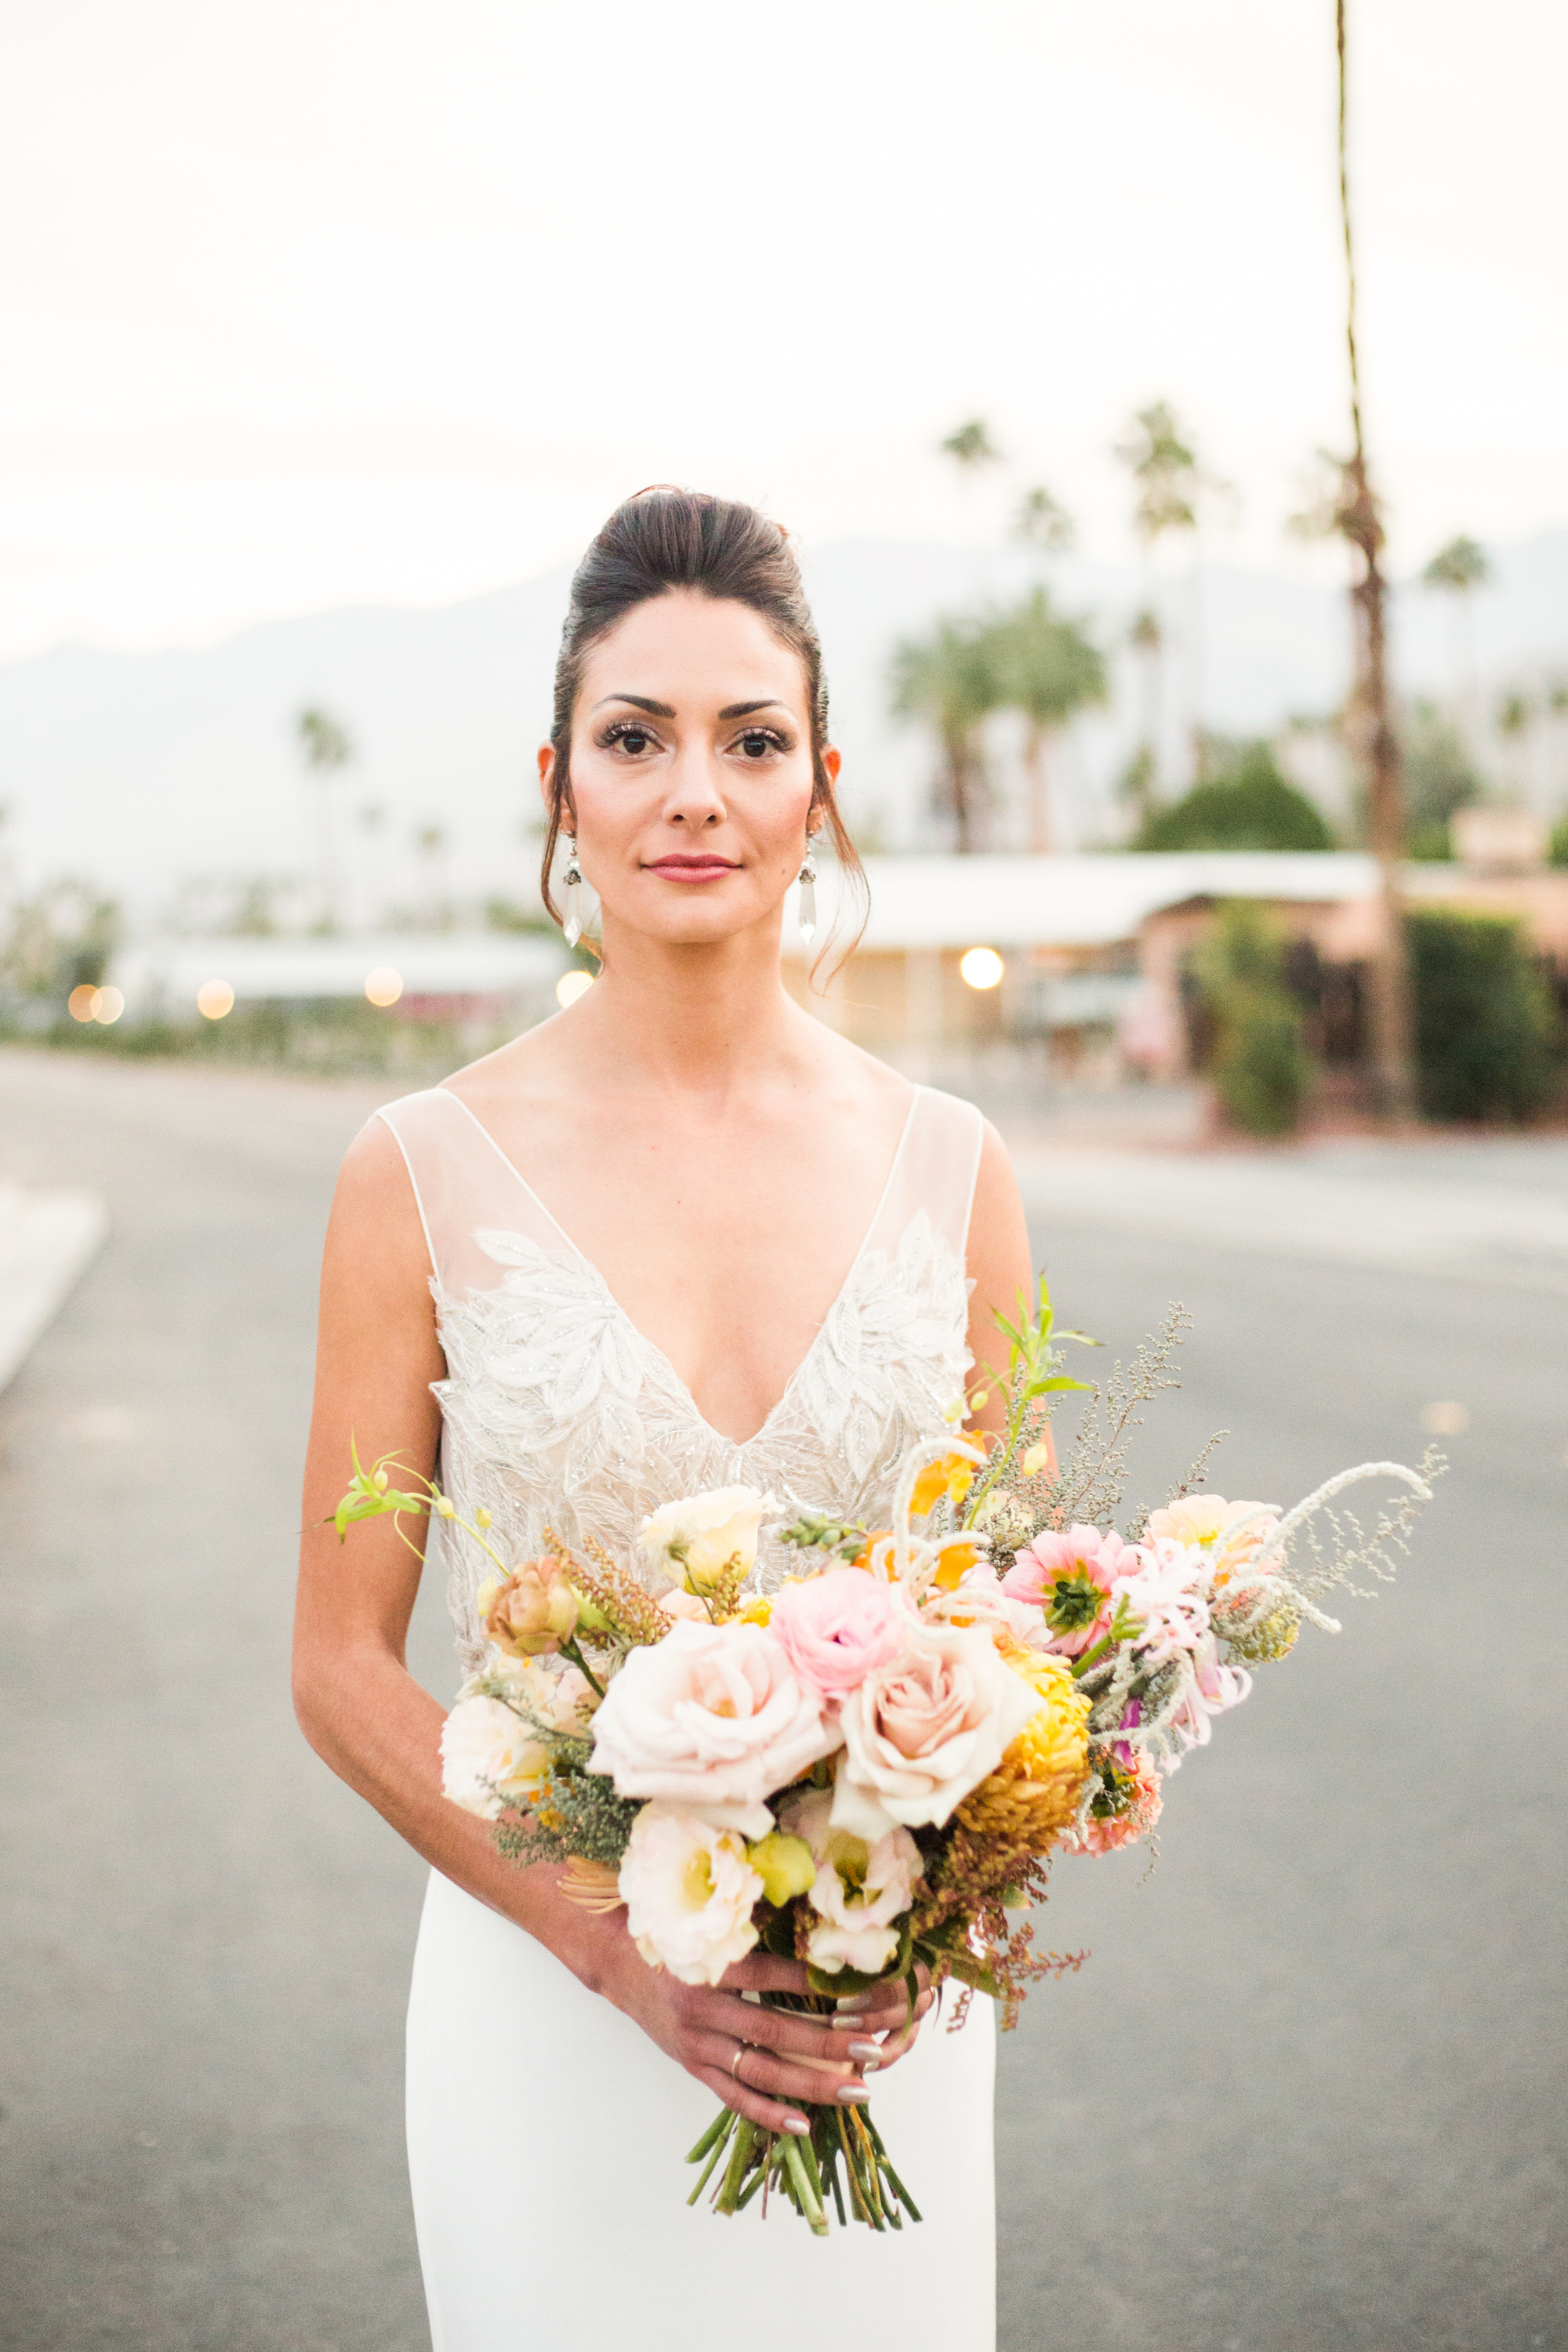 Beautiful bride with colorful desert inspired boquet